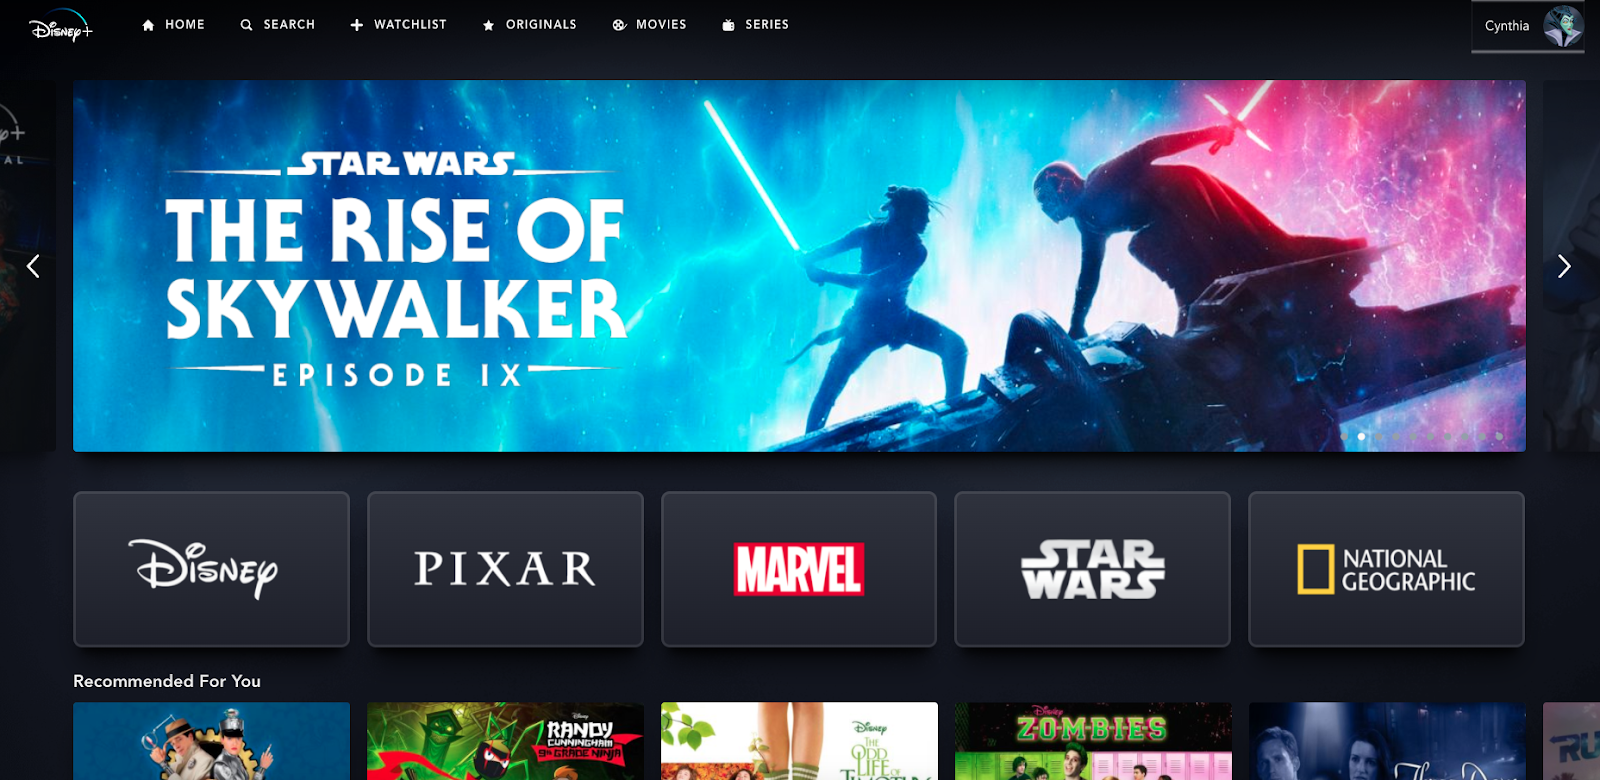 Screenshot of the Disney+ landing page, featuring selections for Disney, Pixar, Marvel, Star Wars, and National Geographic